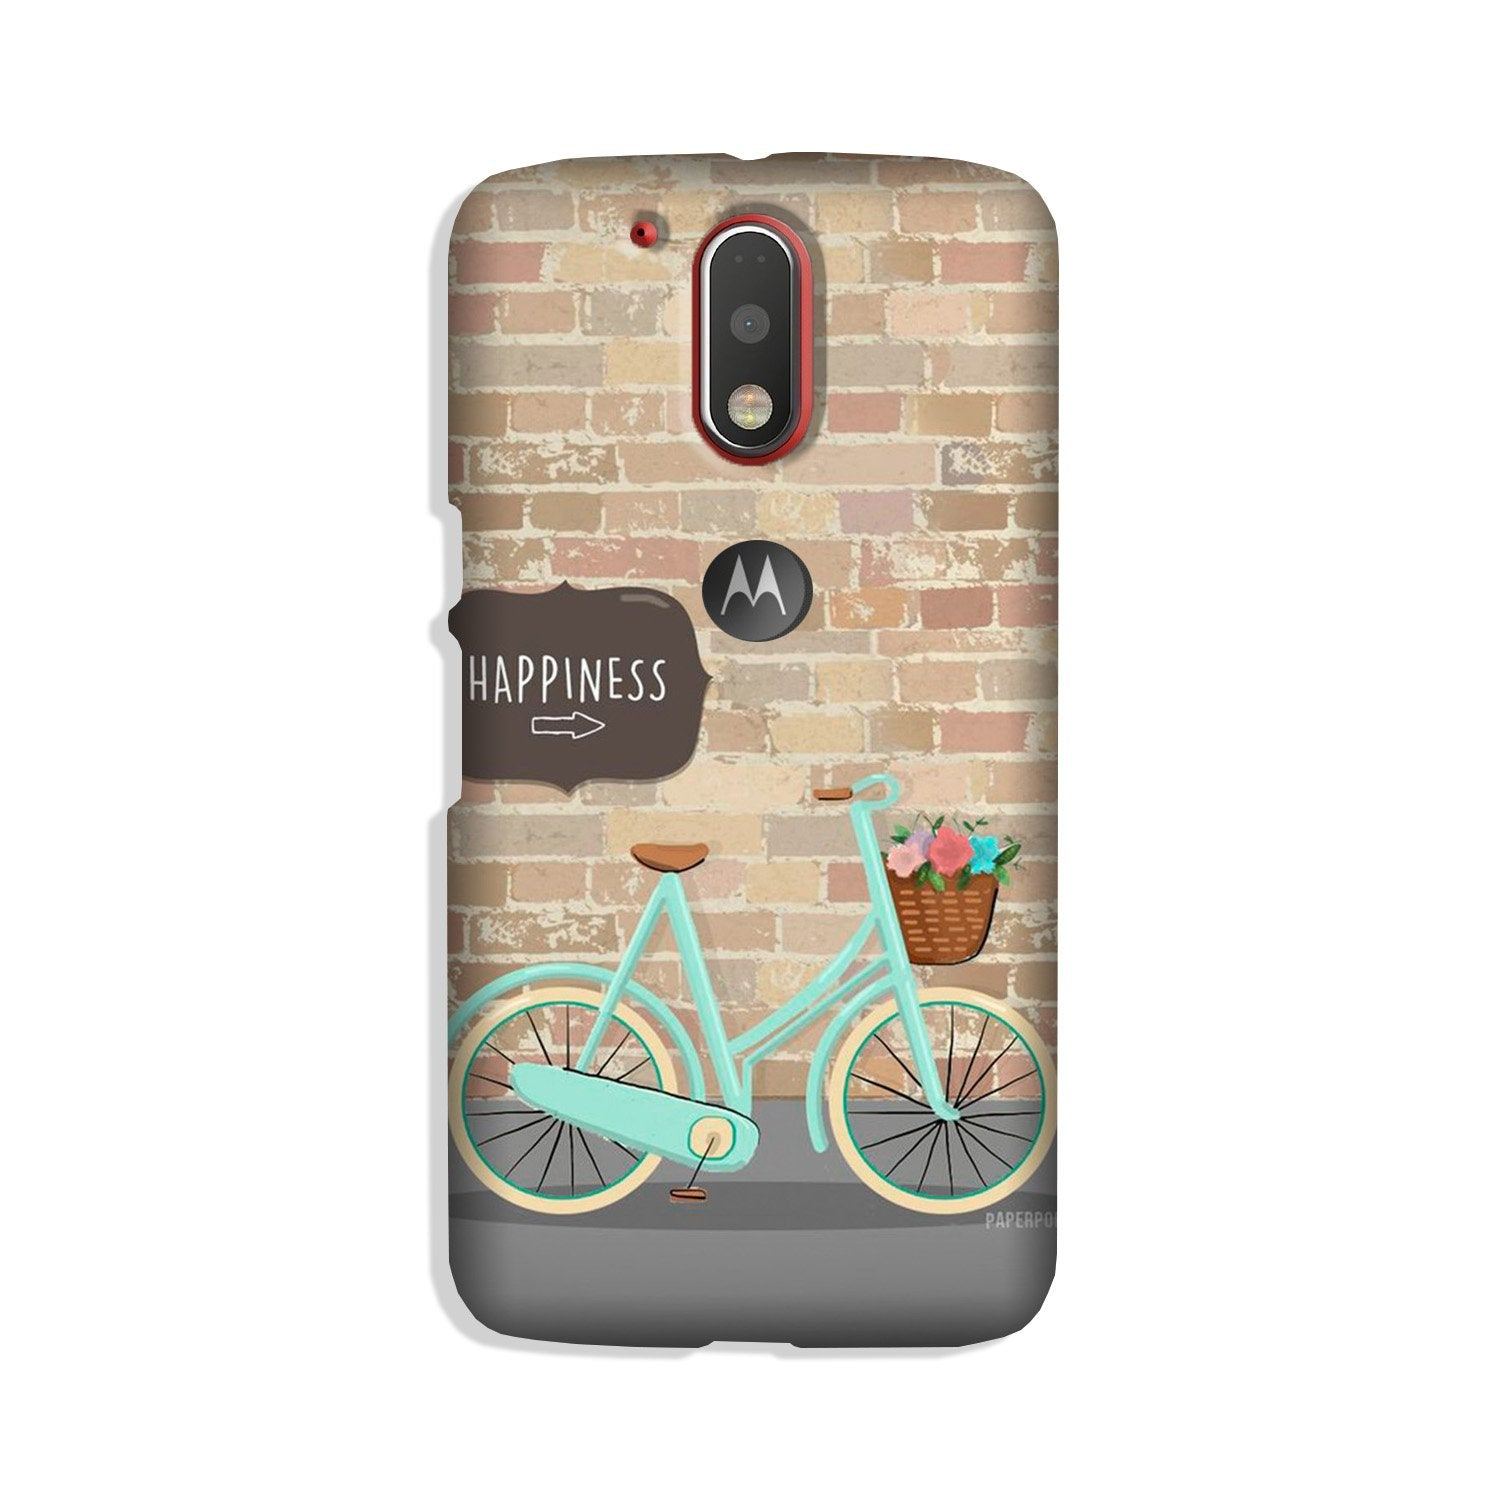 Happiness Case for Moto G4 Plus